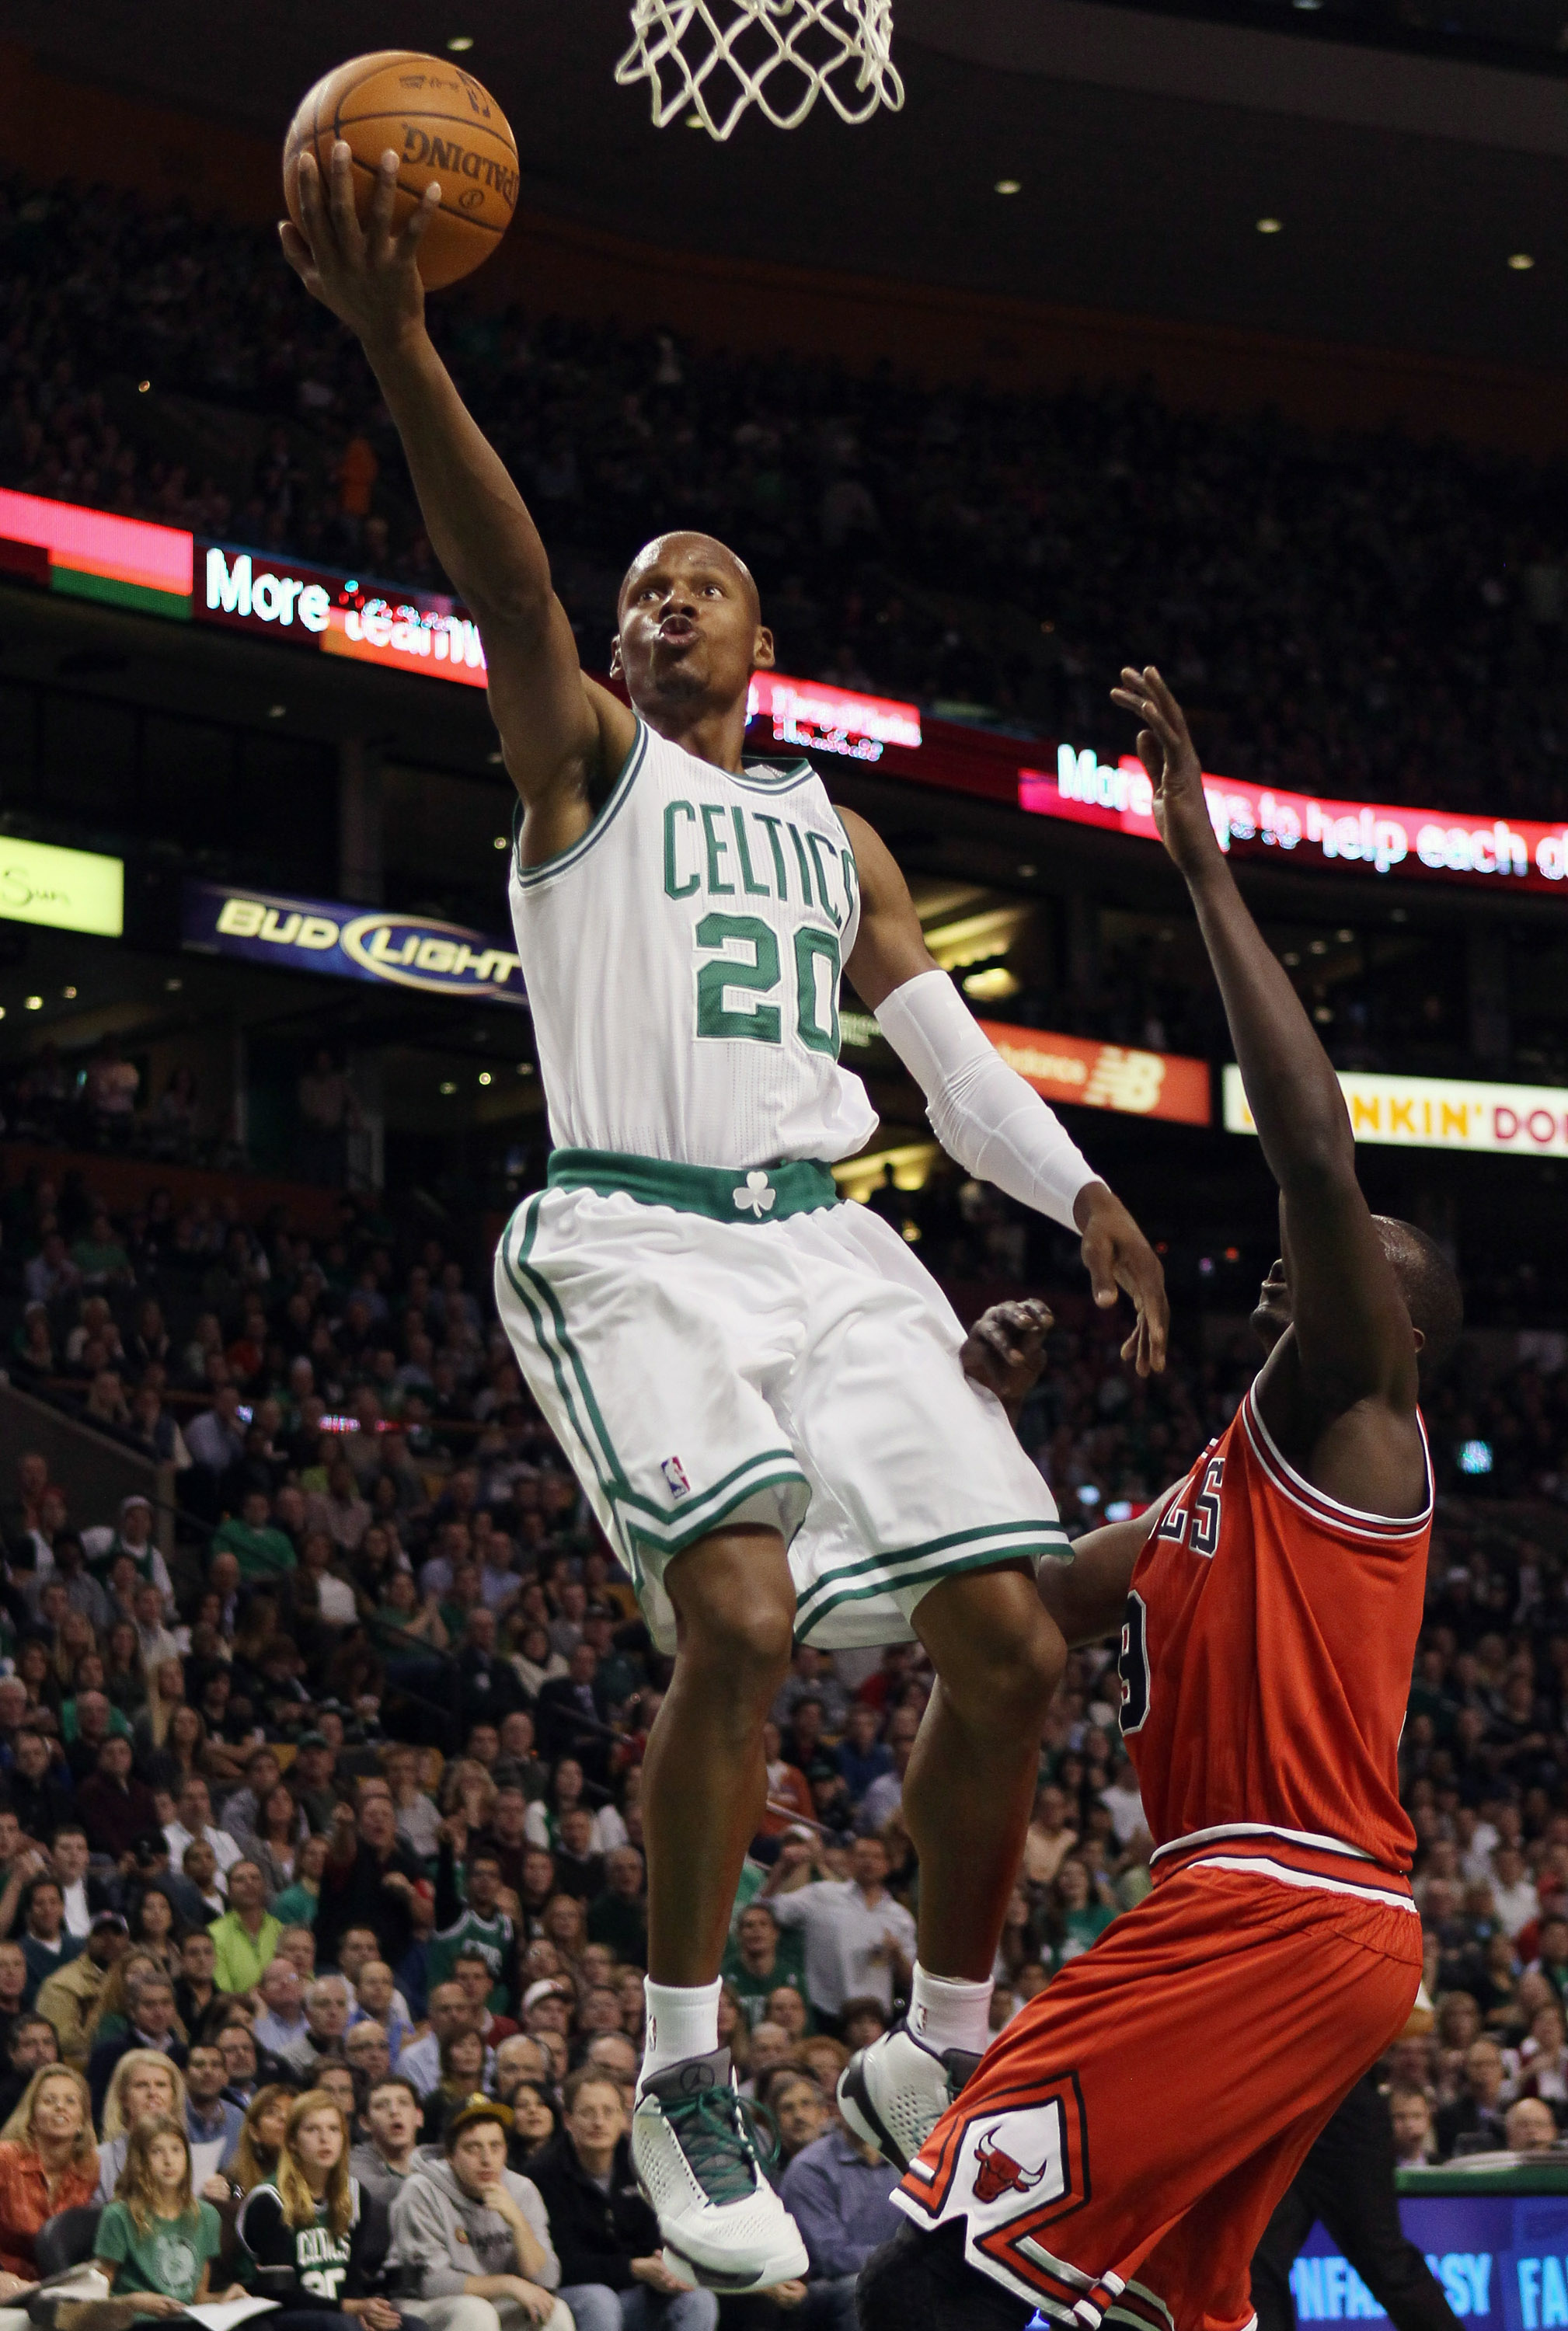 BOSTON, MA - NOVEMBER 05:  Ray Allen #20 of the Boston Celtics takes a shot as Luol Deng #9 of the Chicago Bulls defends on November 5, 2010 at the TD Garden in Boston, Massachusetts.  NOTE TO USER: User expressly acknowledges and agrees that, by download